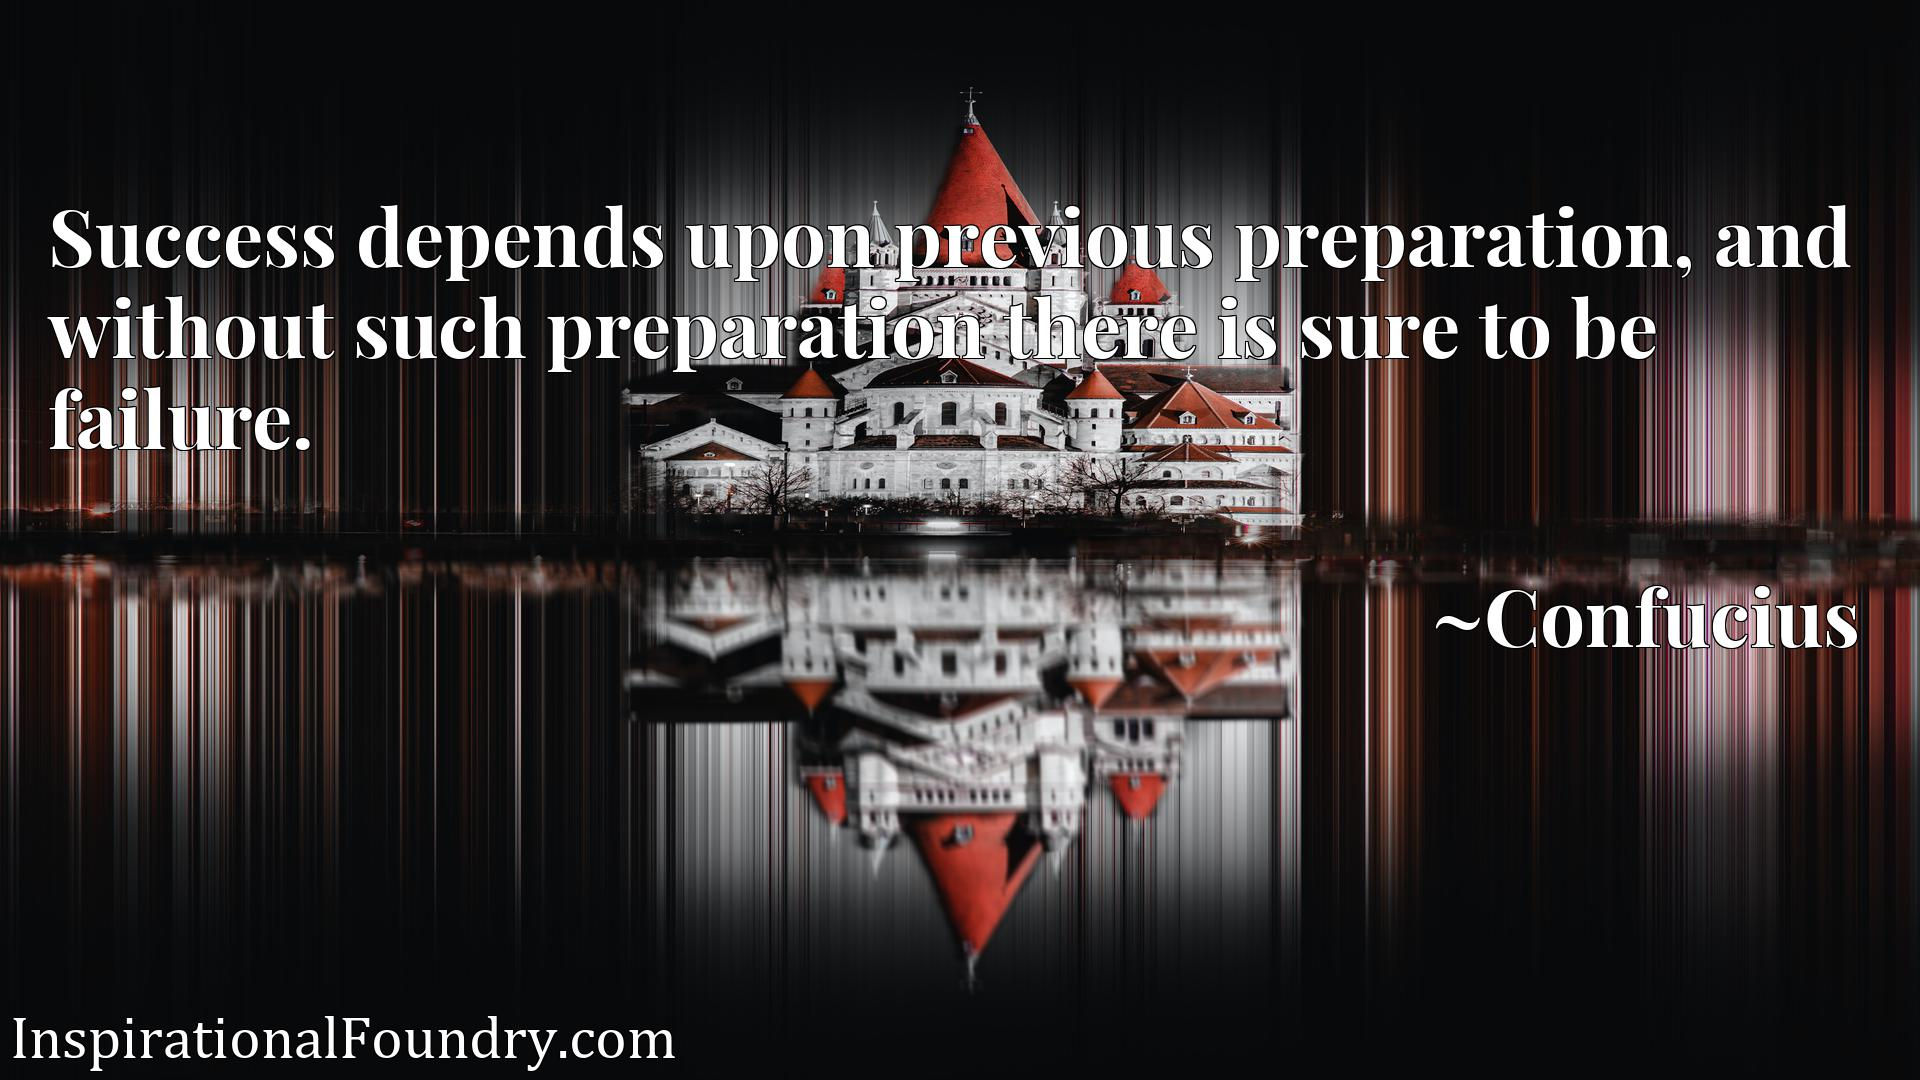 Success depends upon previous preparation, and without such preparation there is sure to be failure.